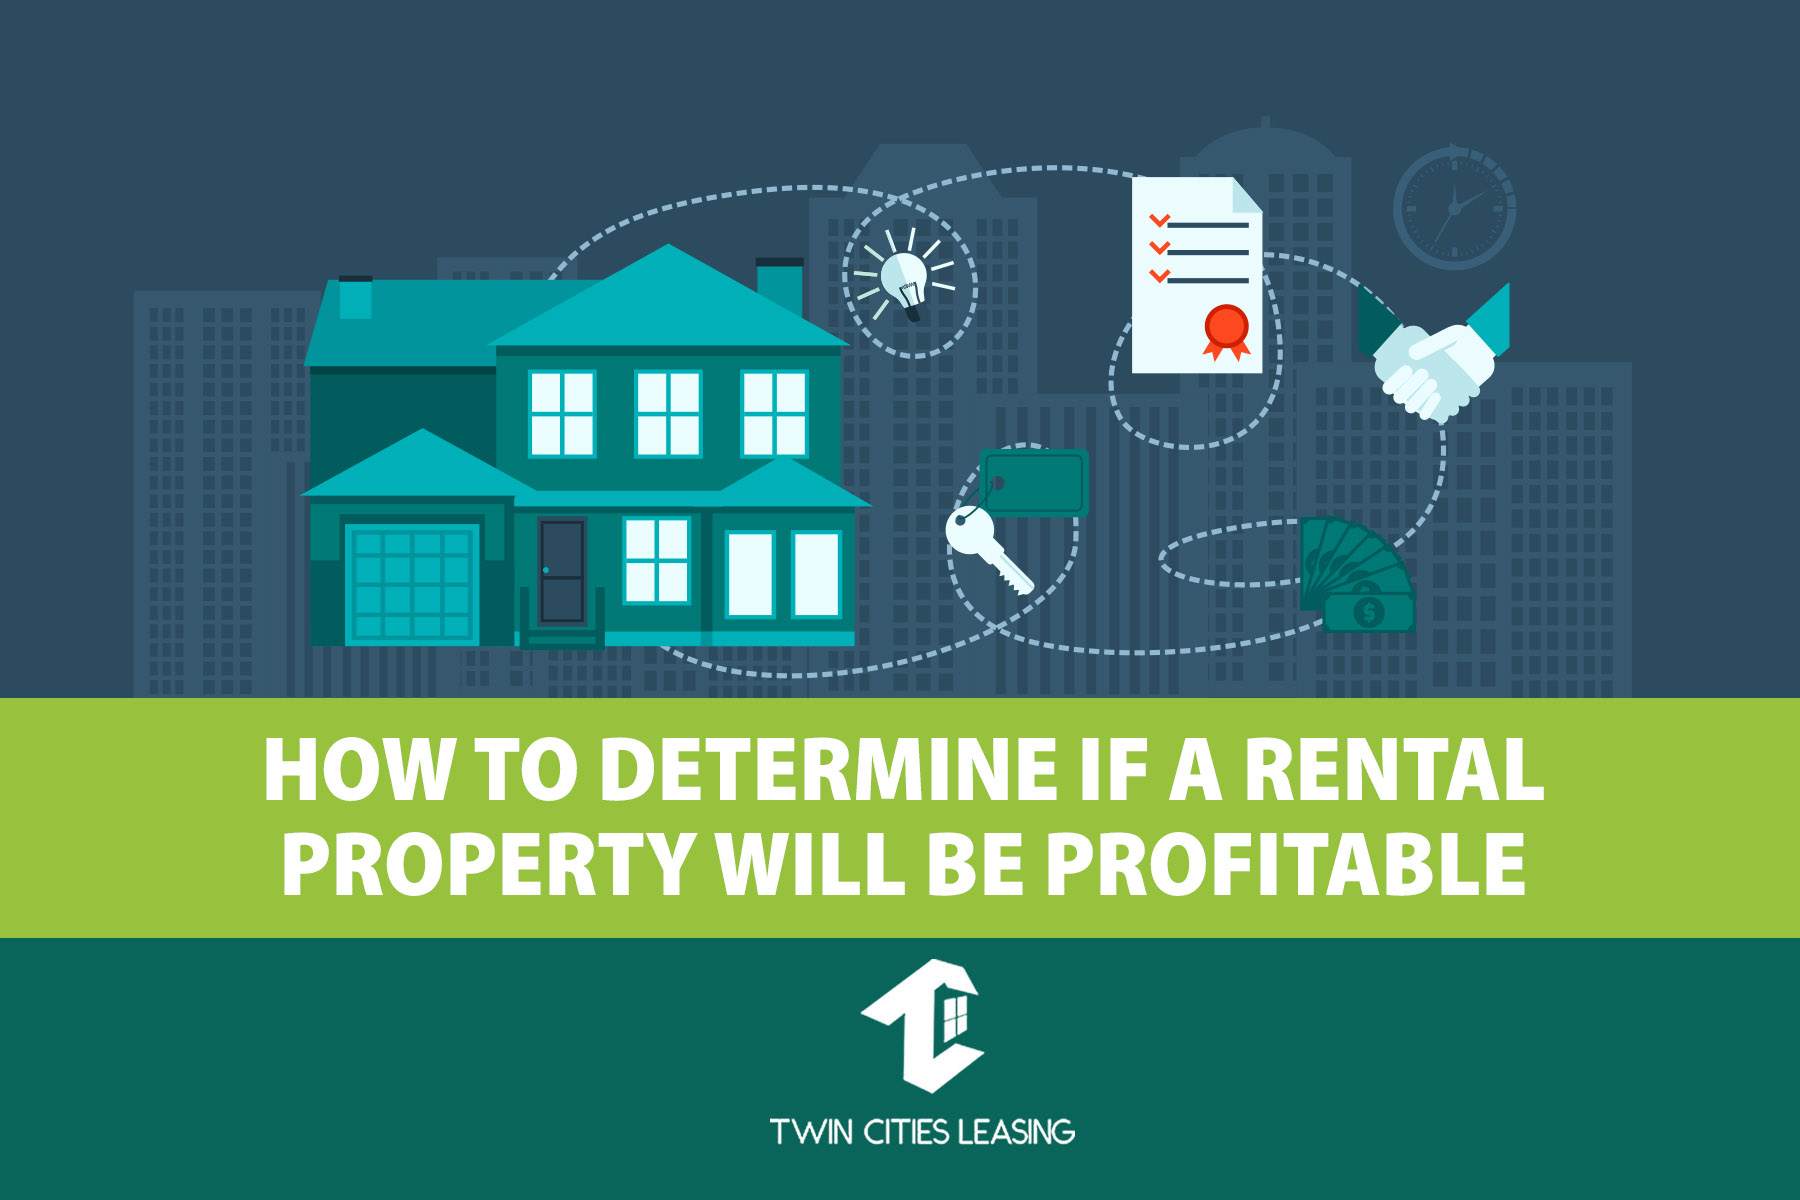 How to Determine If a Rental Property Will be Profitable